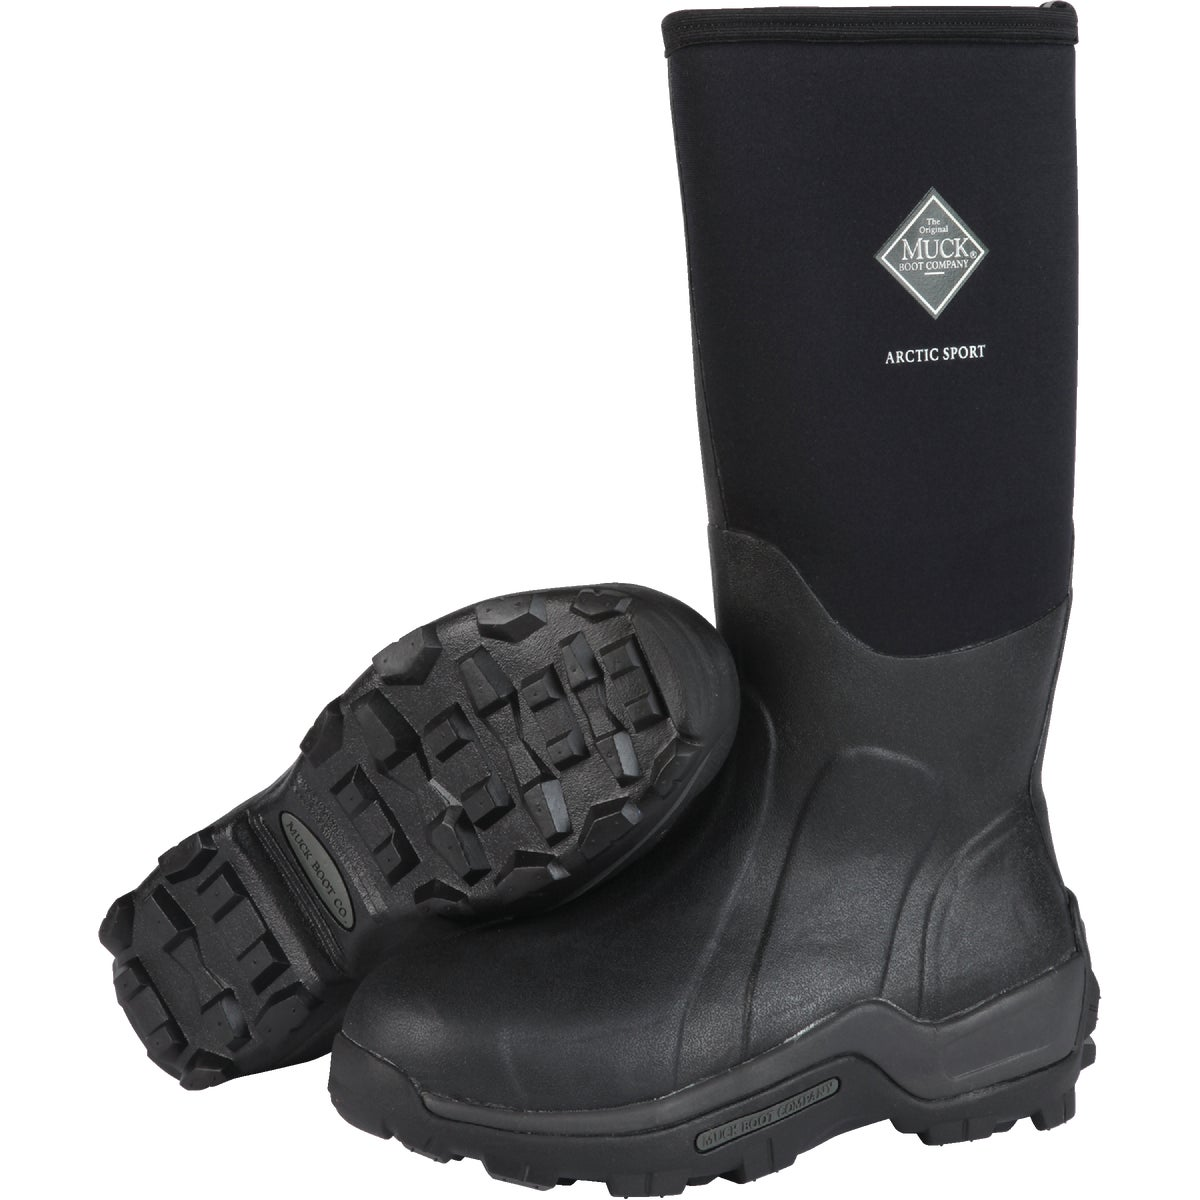 SZ 12 ARTIC SPRT HI BOOT - ASP000-12 by Muck Boot Team J